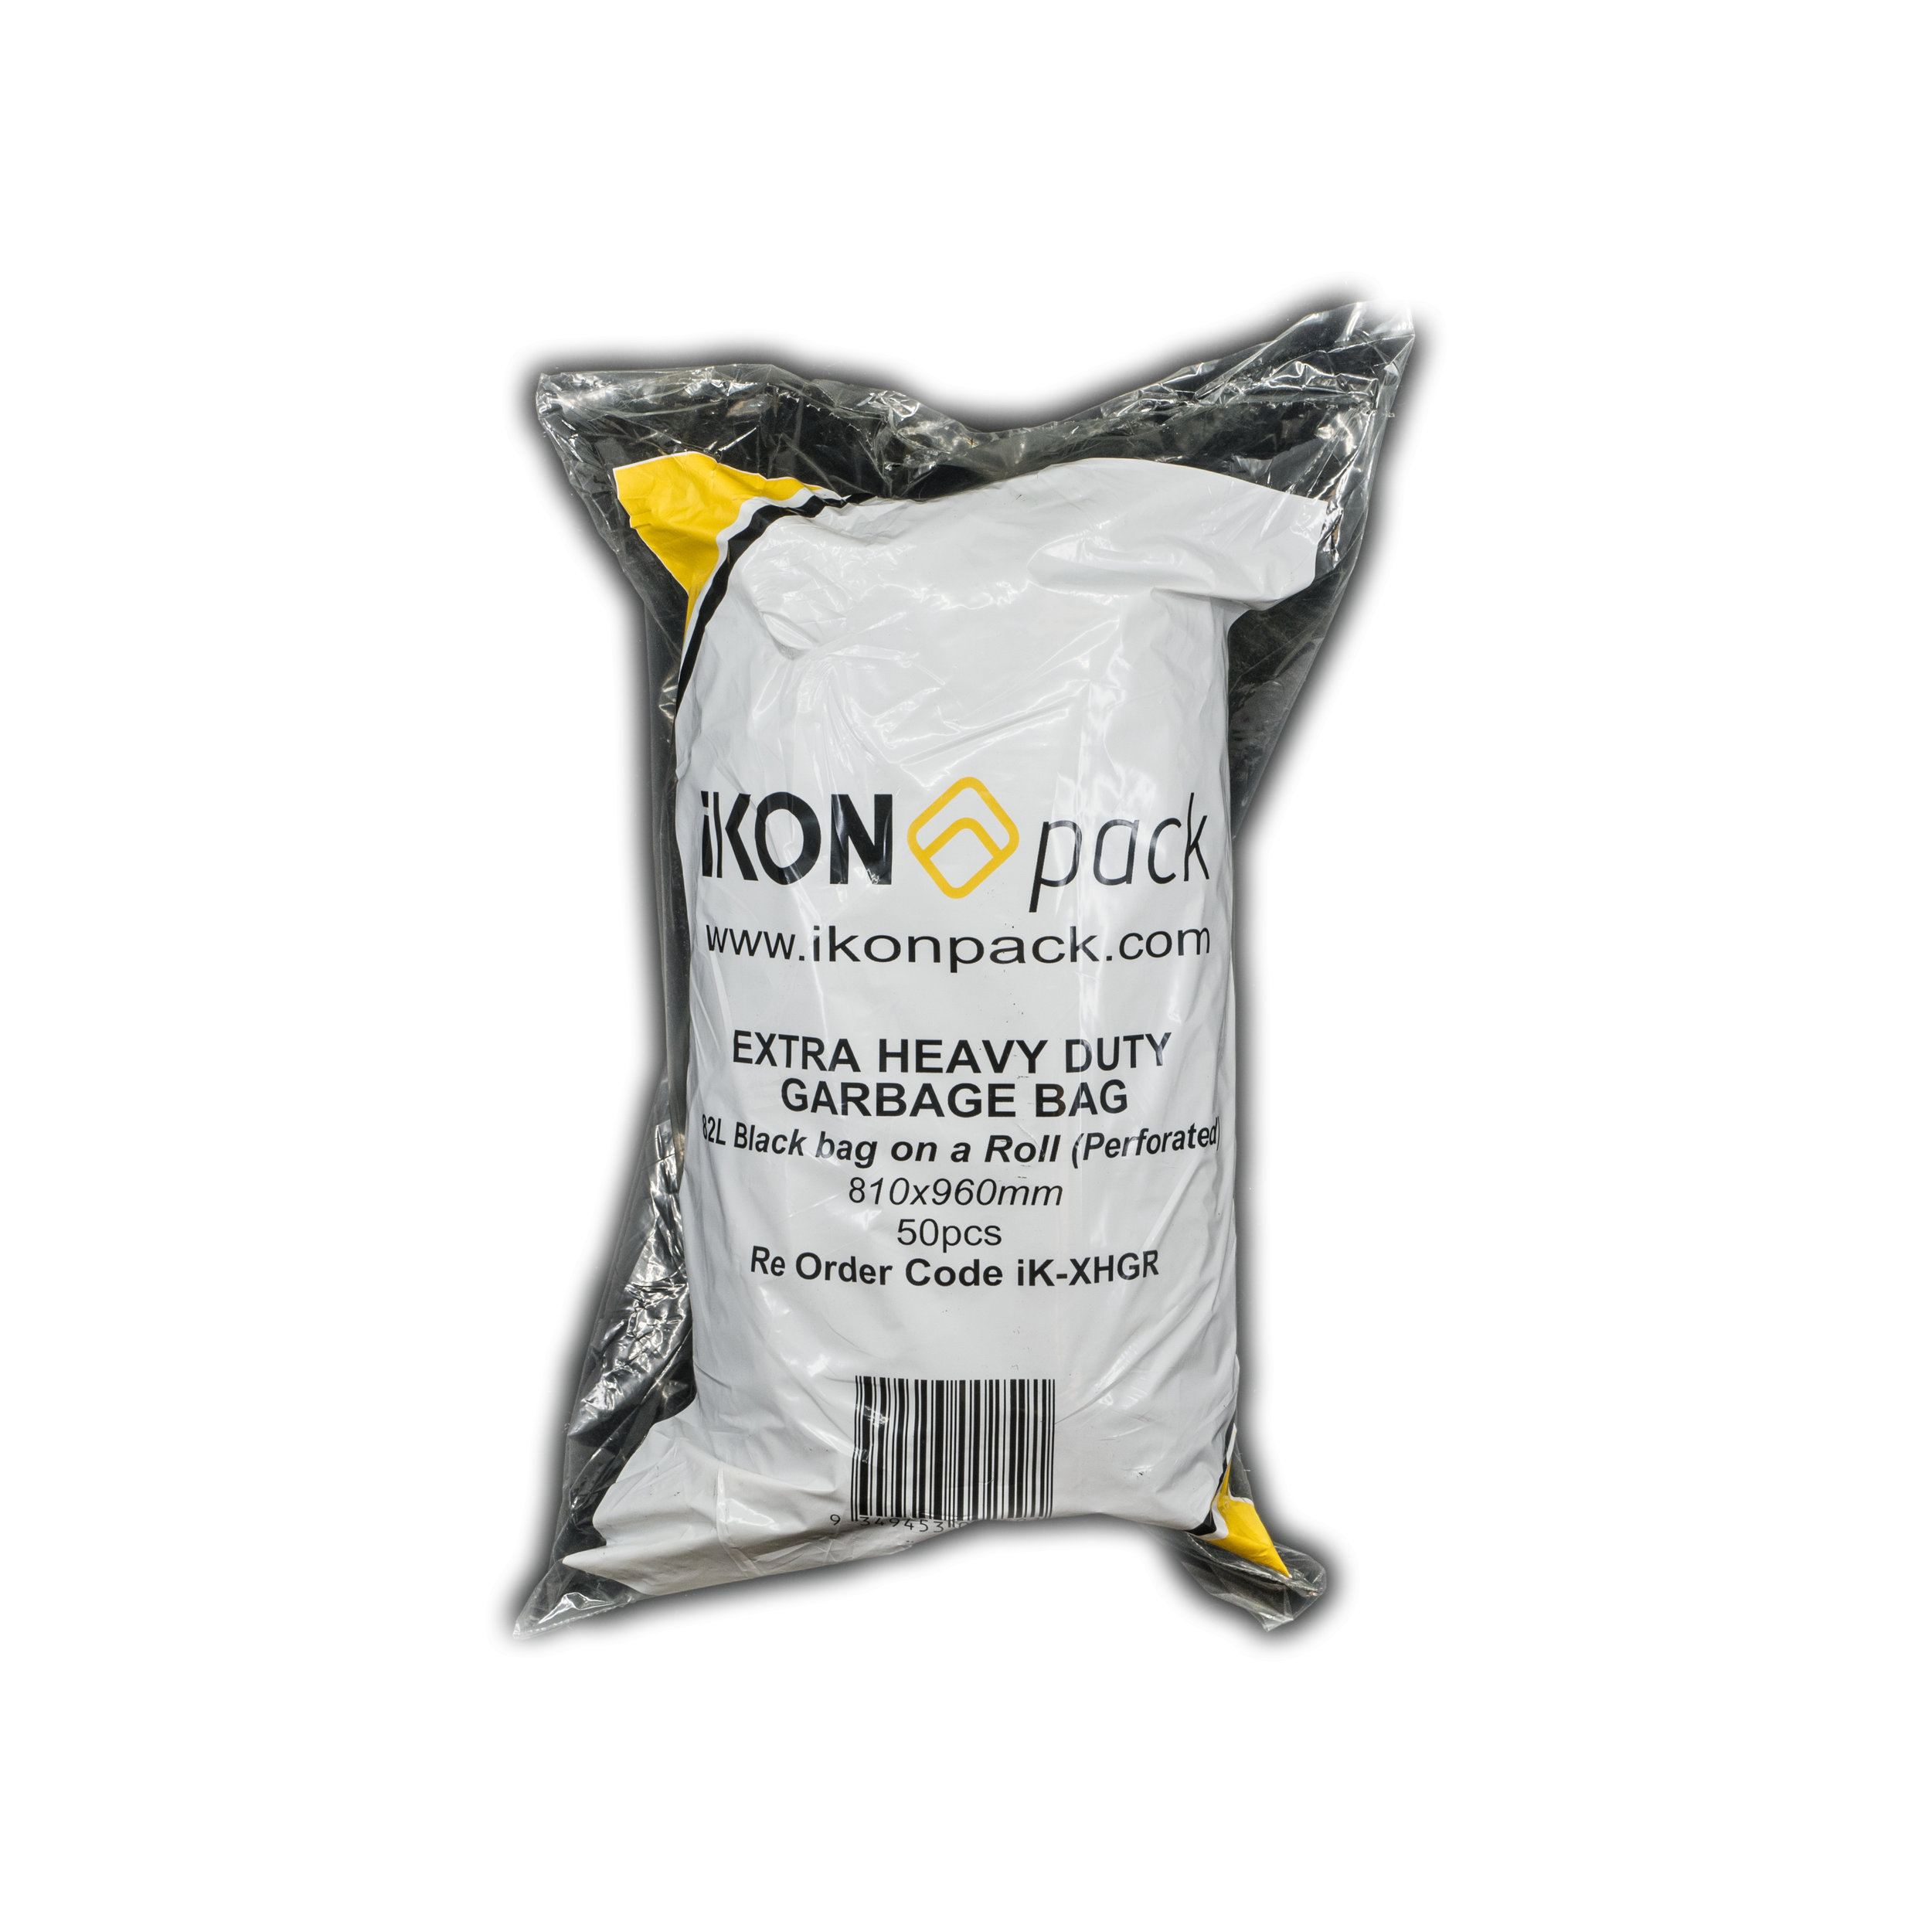 iK-XHGR Garbage Bags Extra Heavy Duty   82L Garbage Bags 810 x 960mm (perforated) on a roll  50 pc 4 per carton